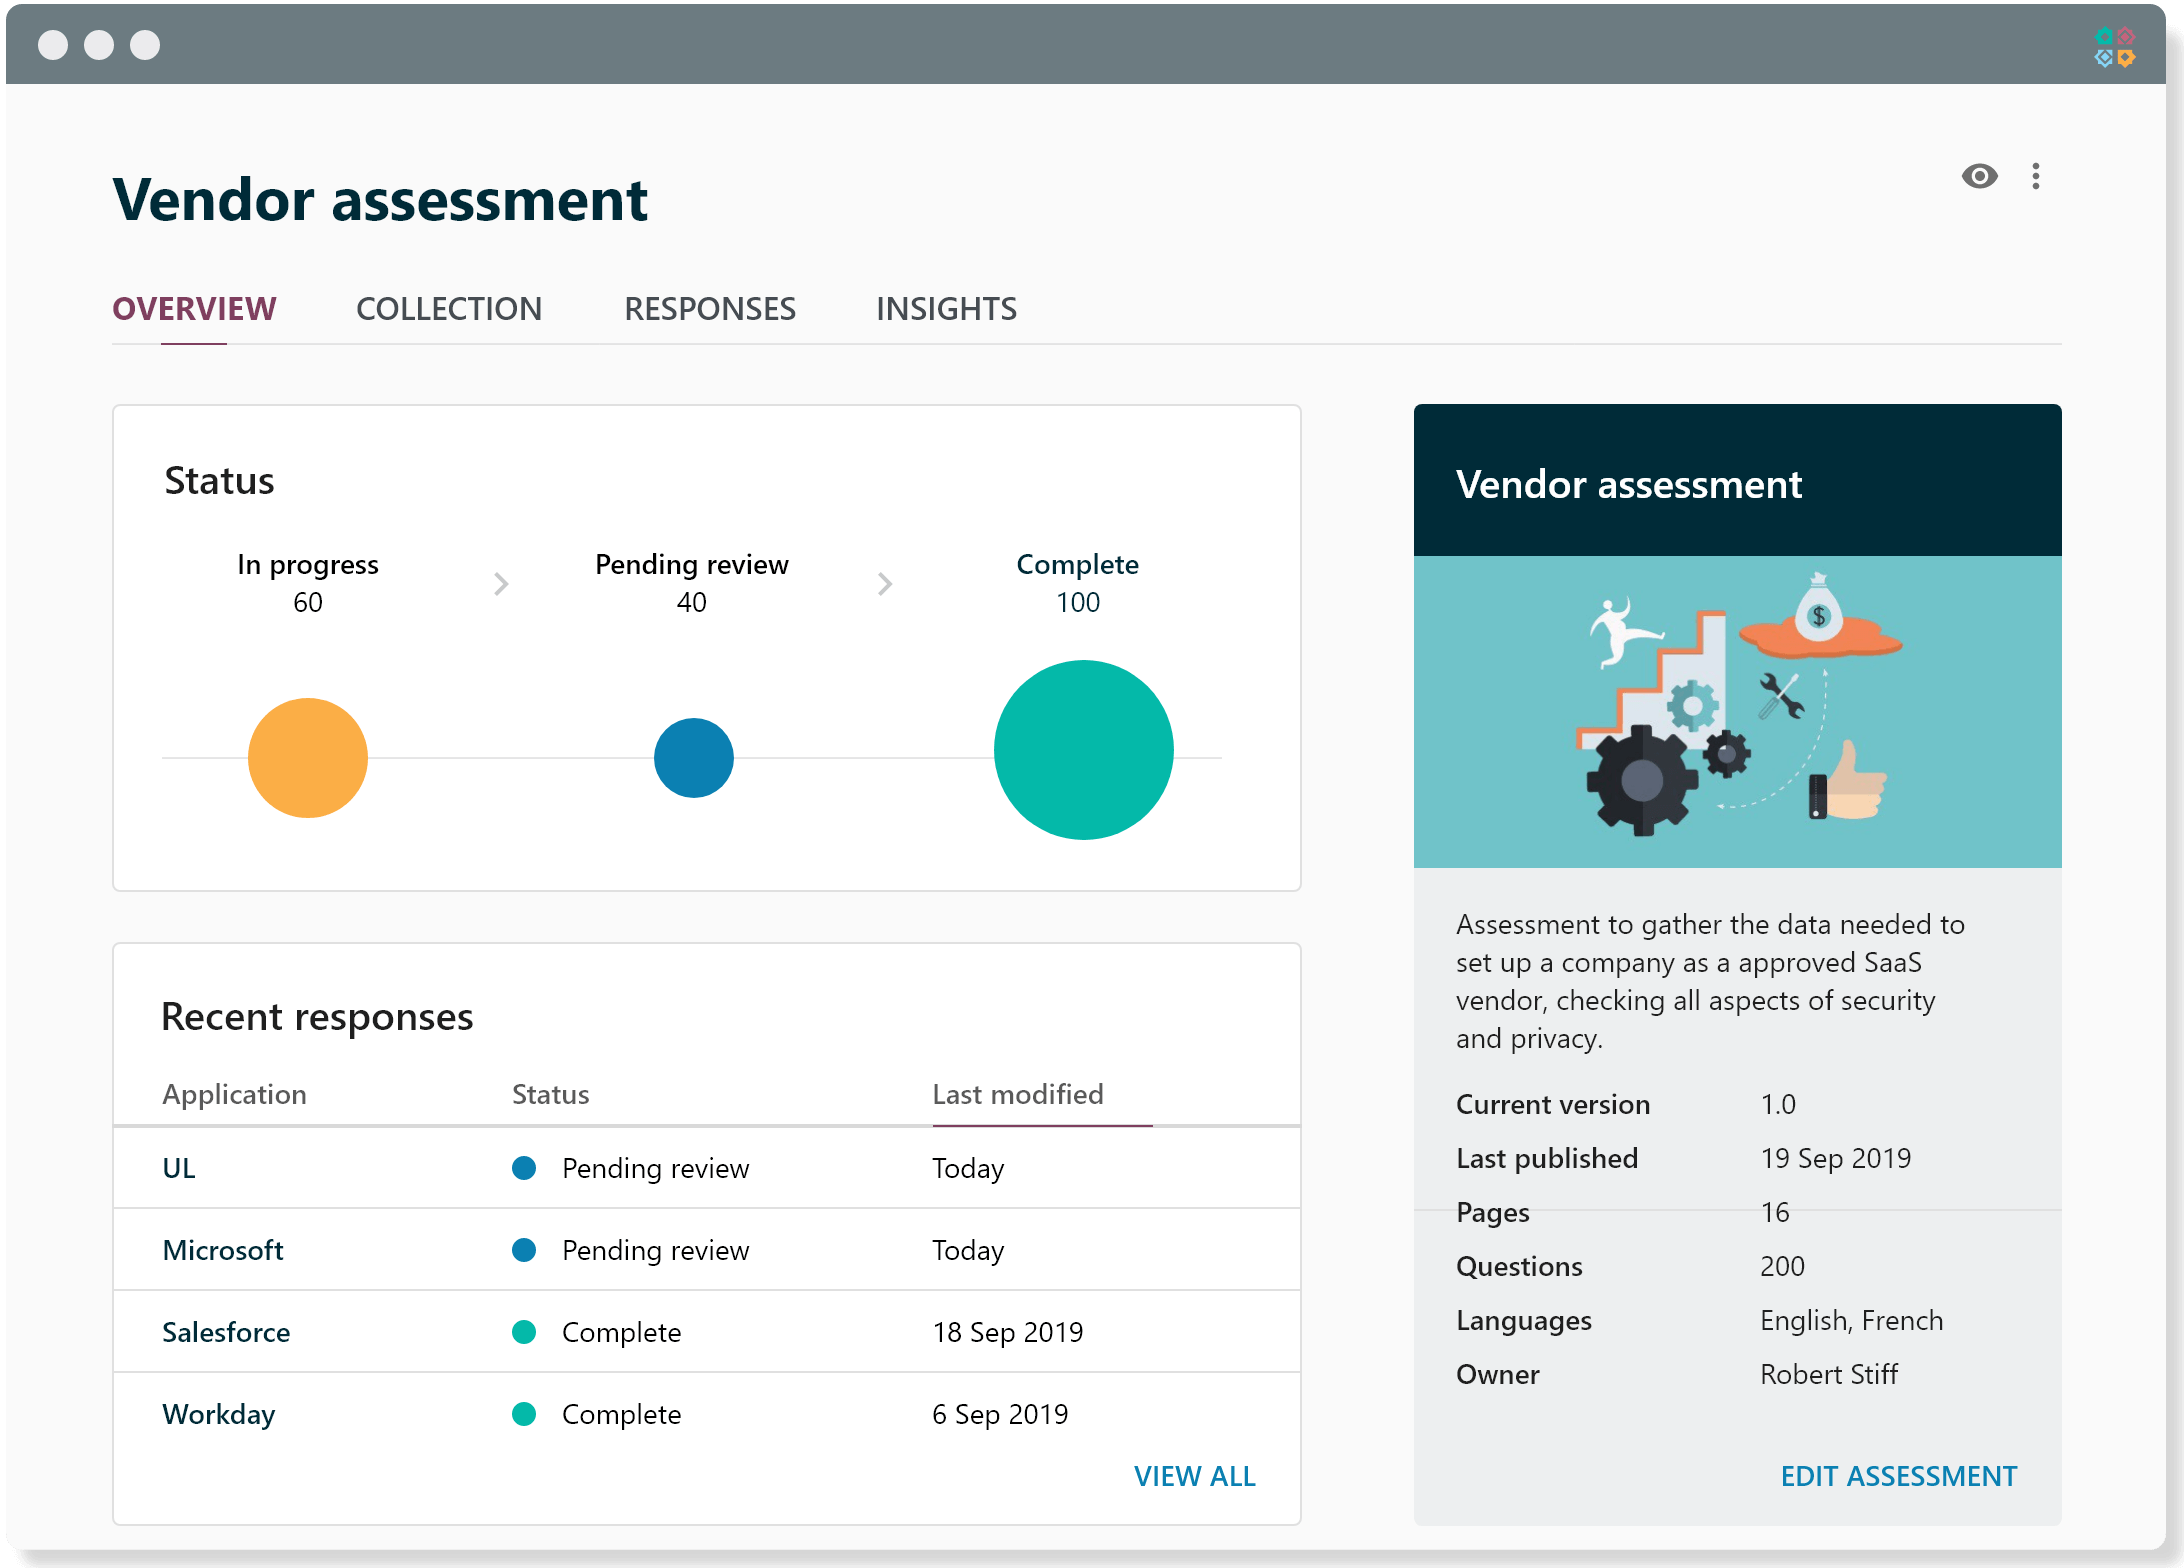 Vendor assessment overview